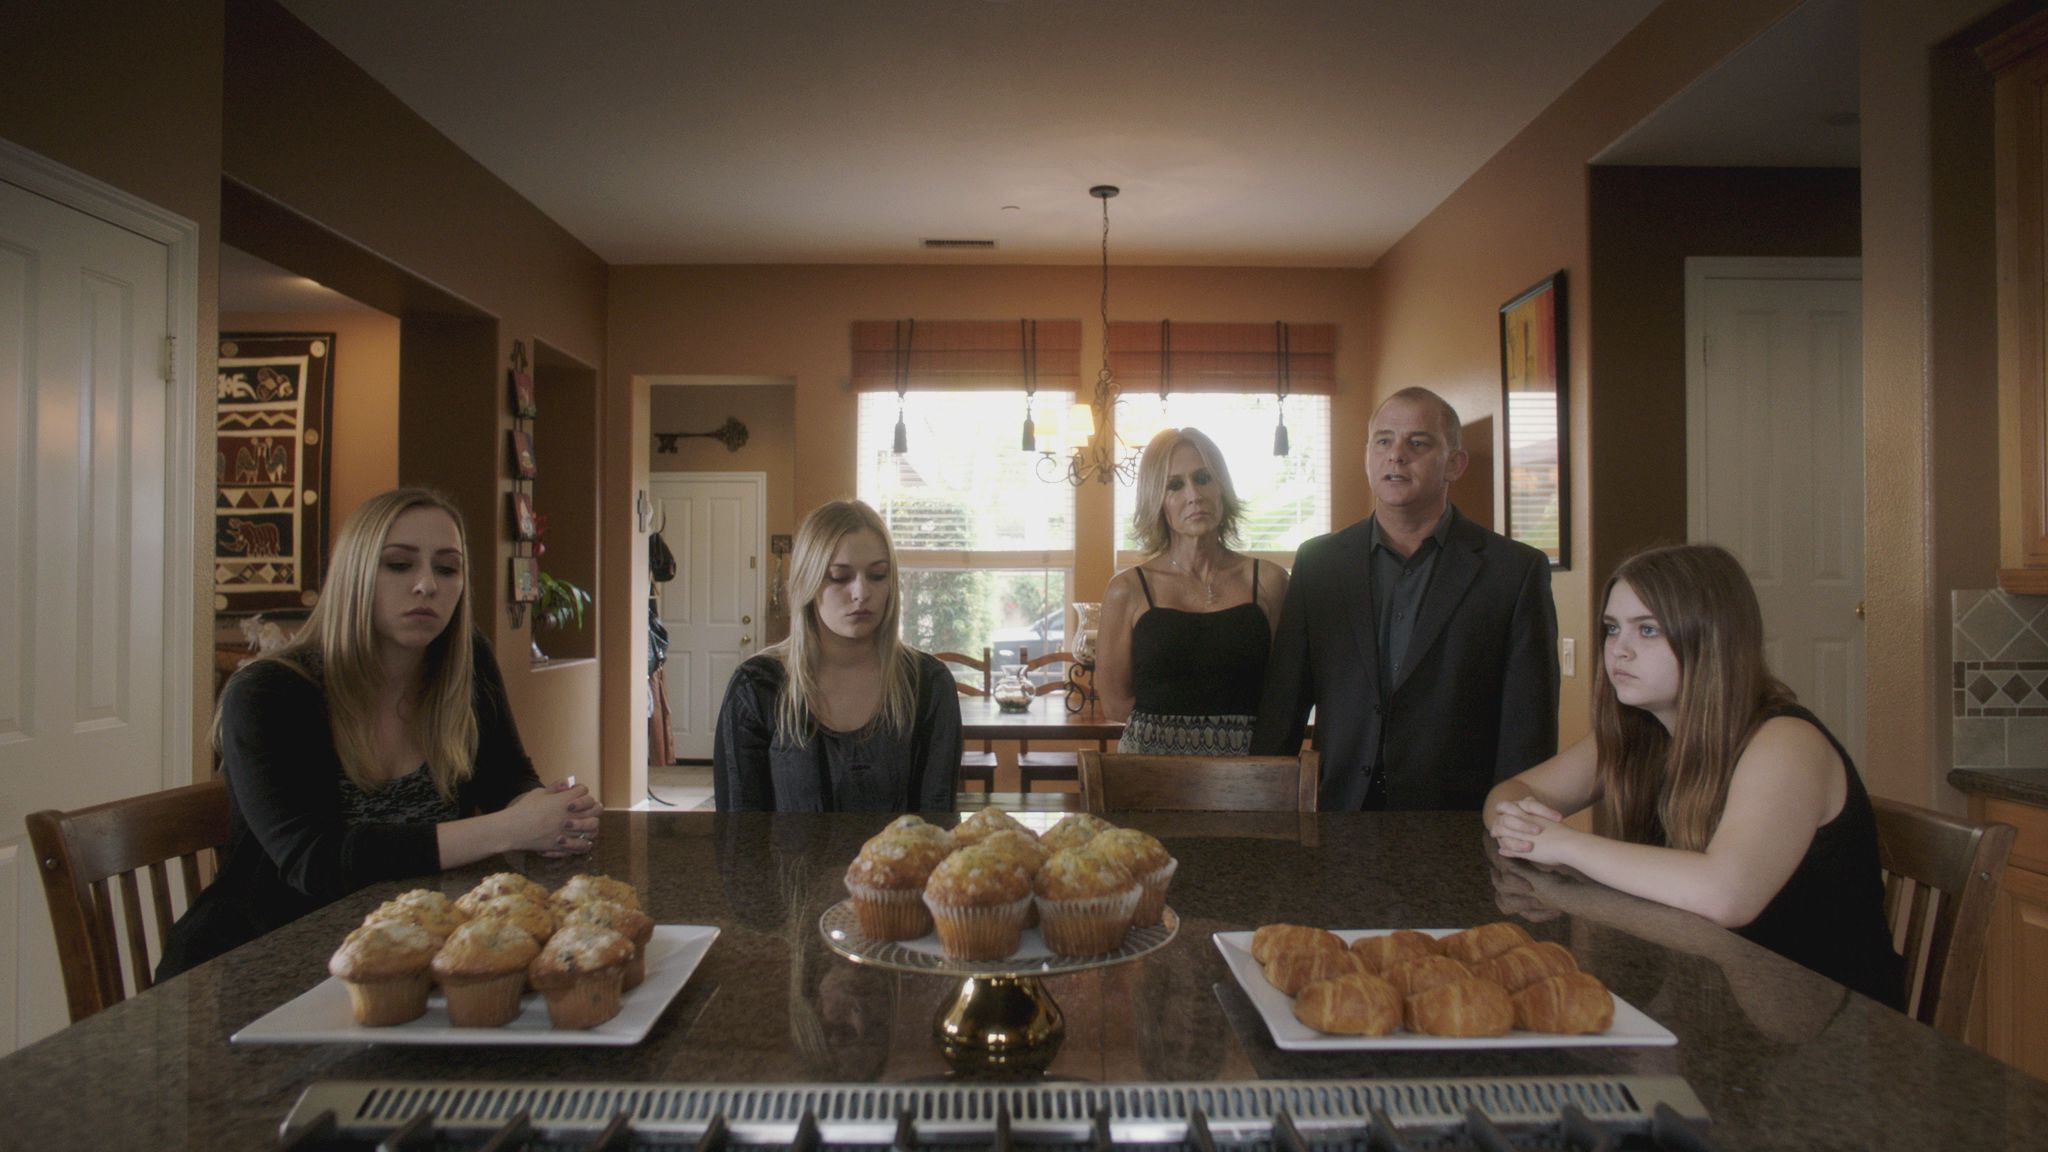 So many muffins in this  mise en scene .